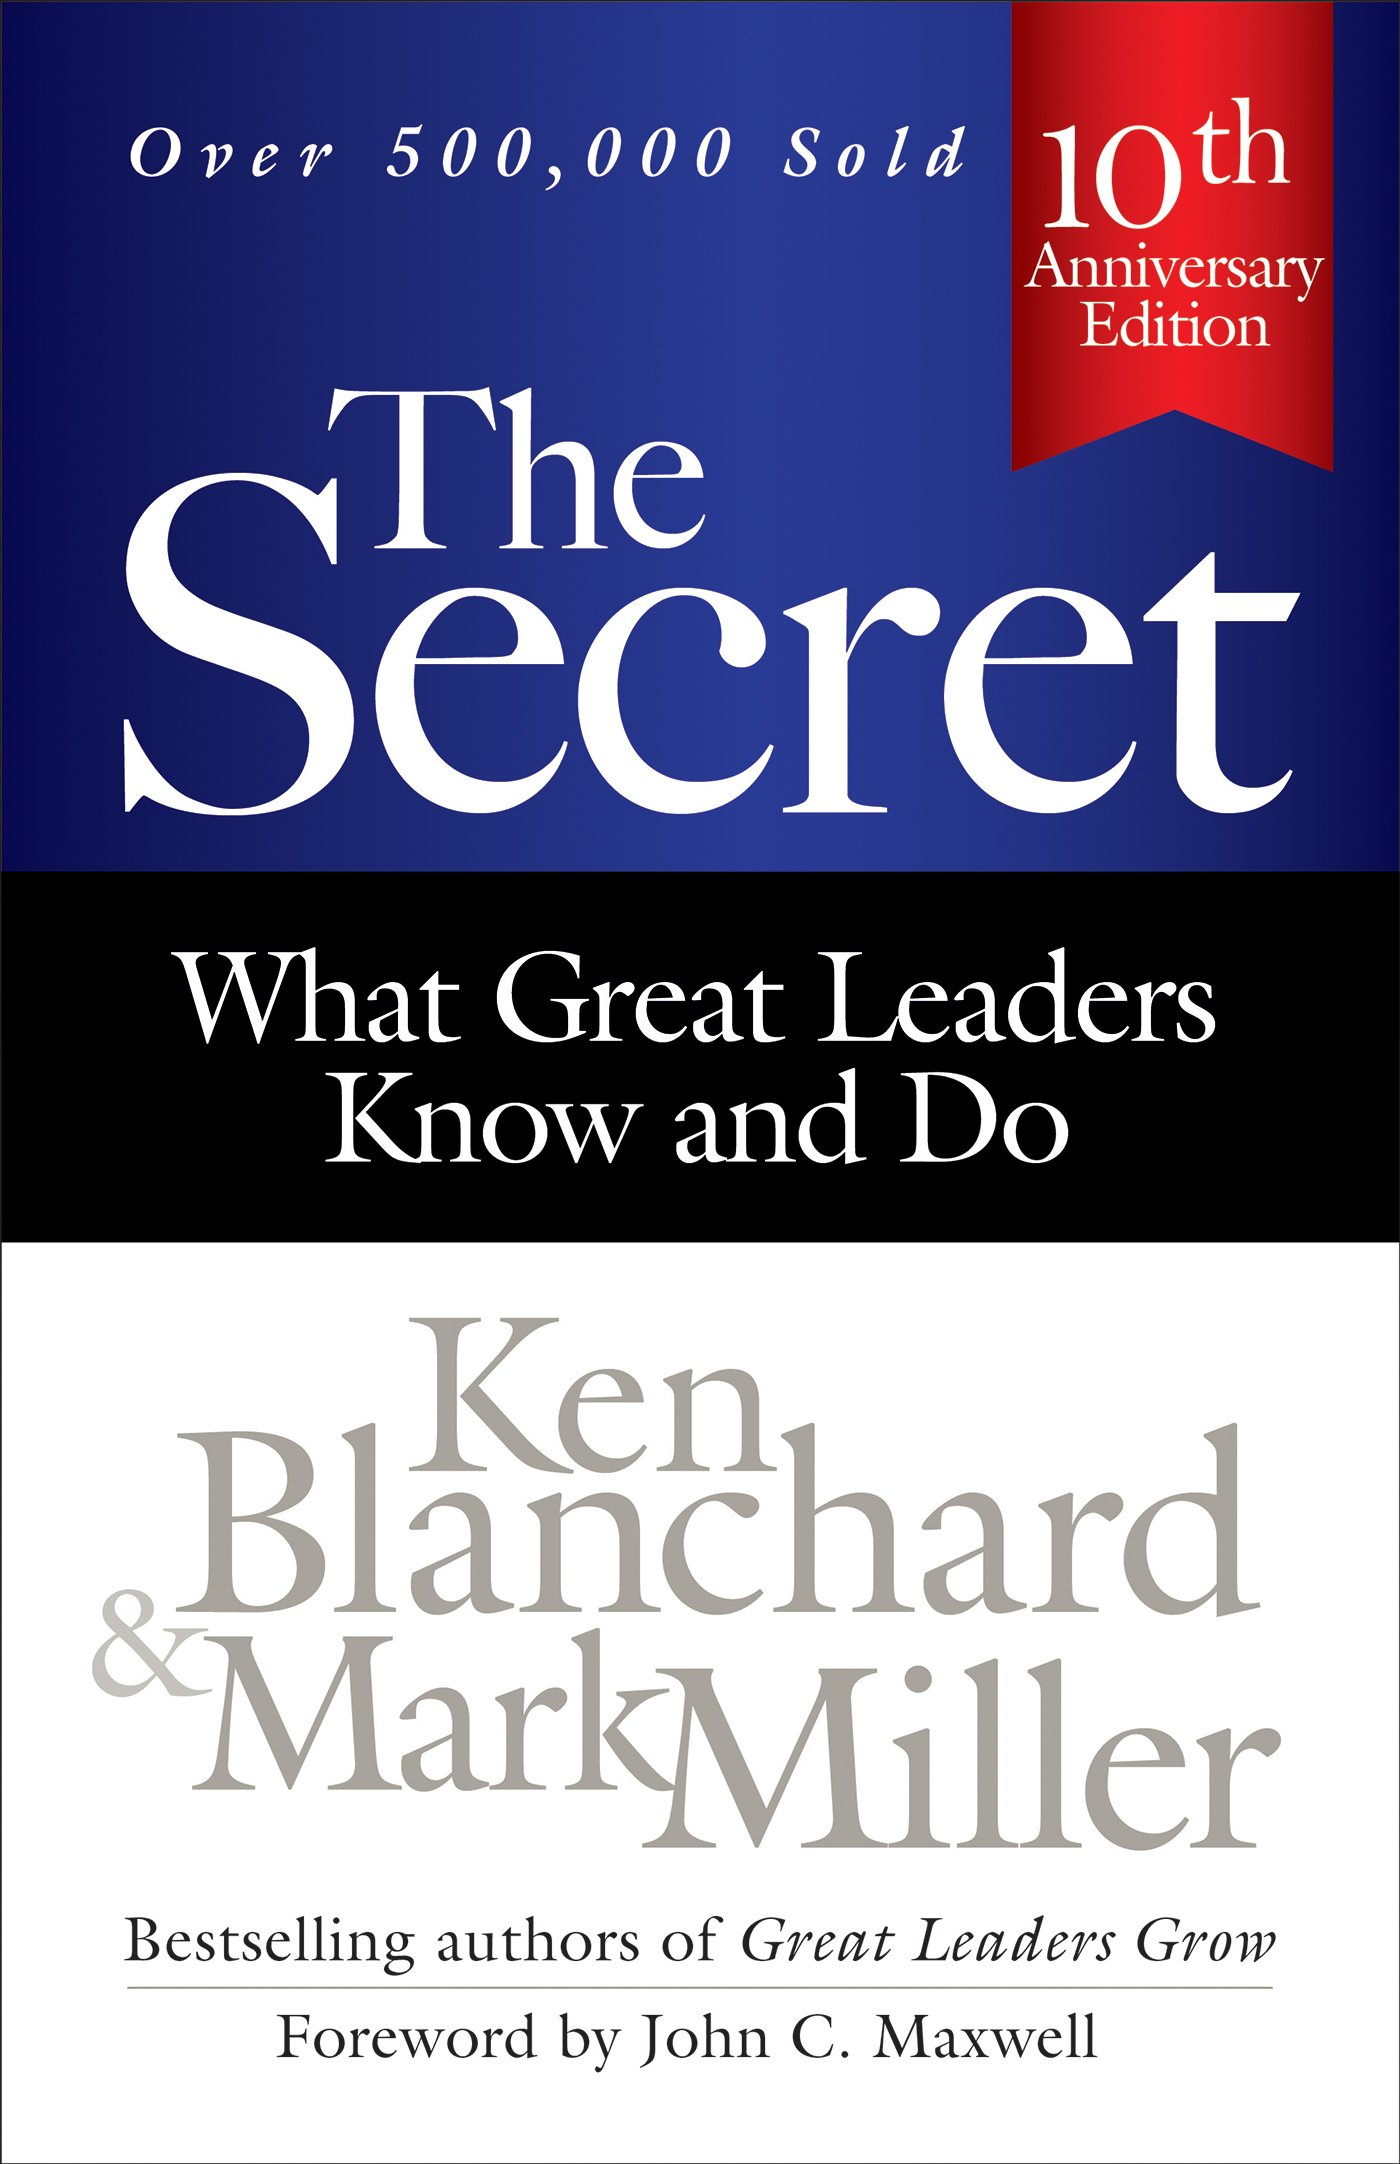 Great Leadership Quotes 20 Quotes On Servant Leadership From The Secretken Blanchard